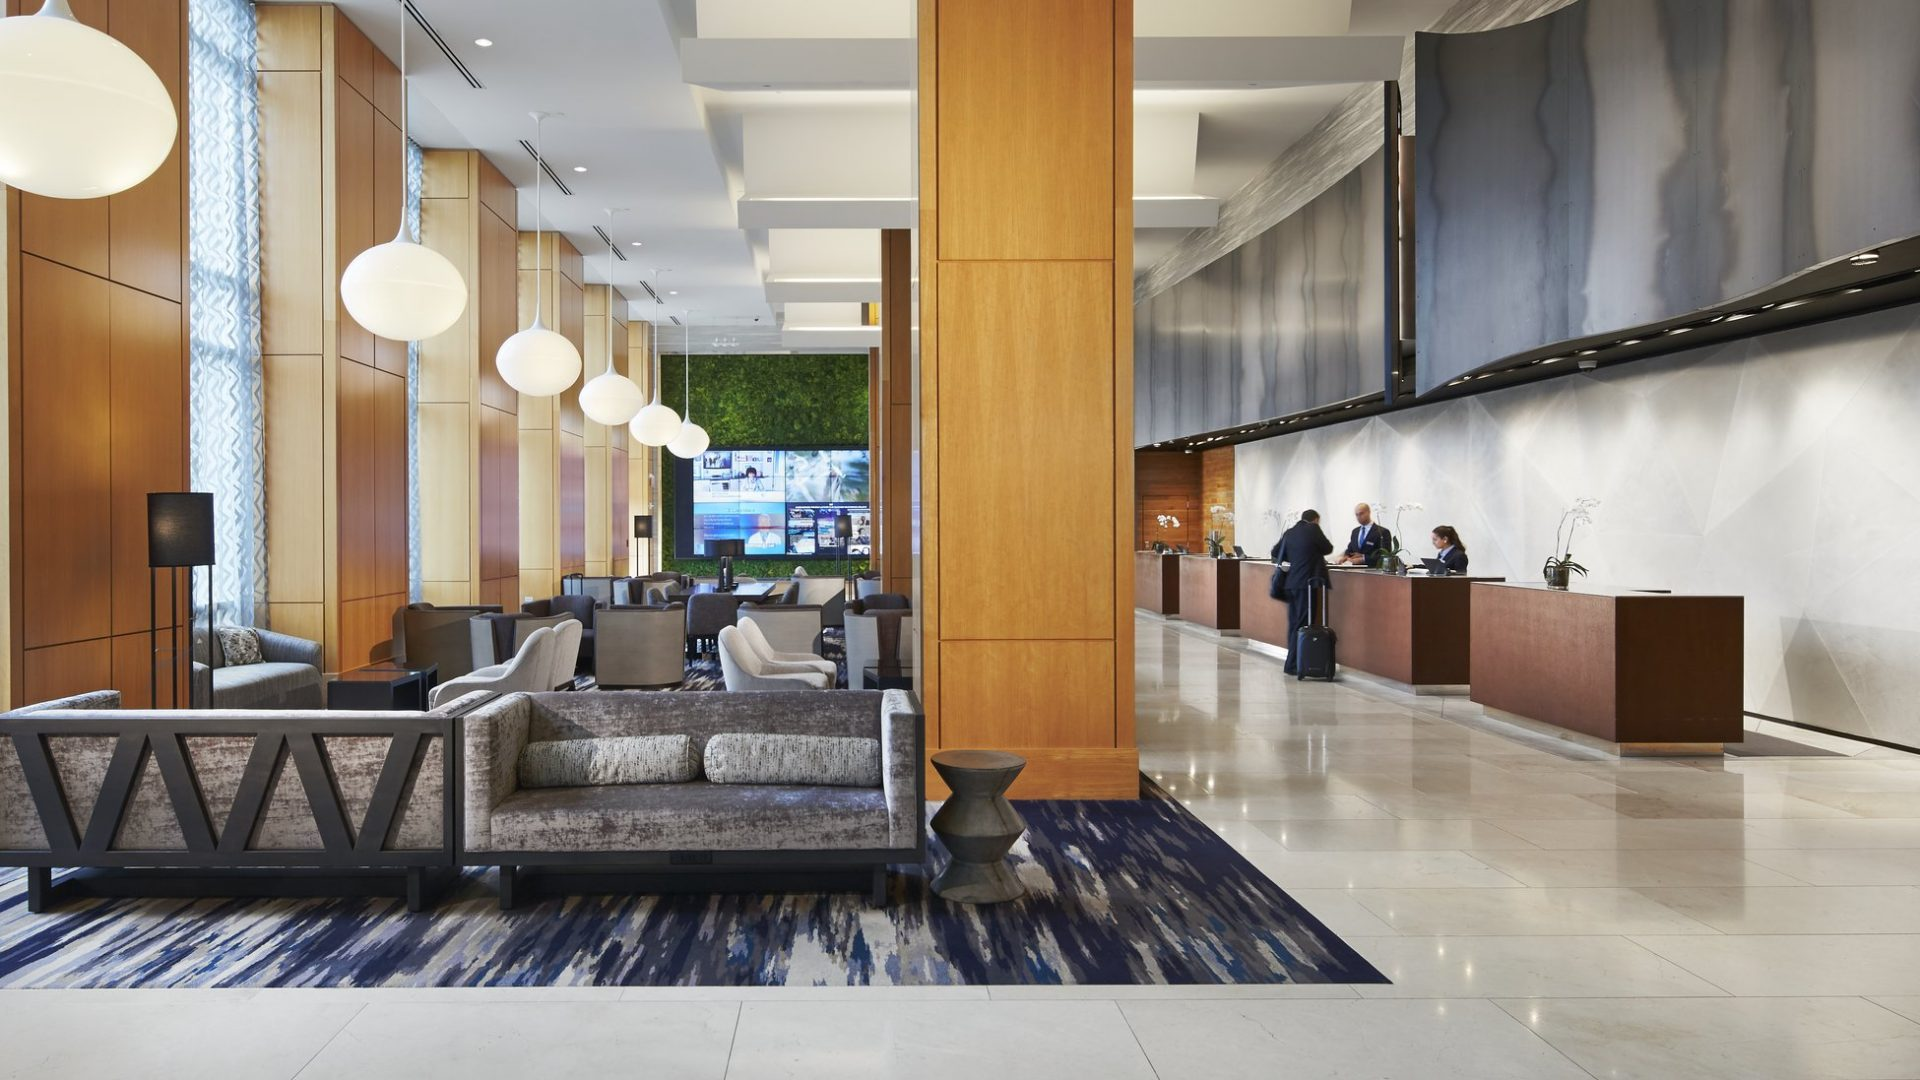 Guest checks in at Loews Chicago O'Hare Hotel